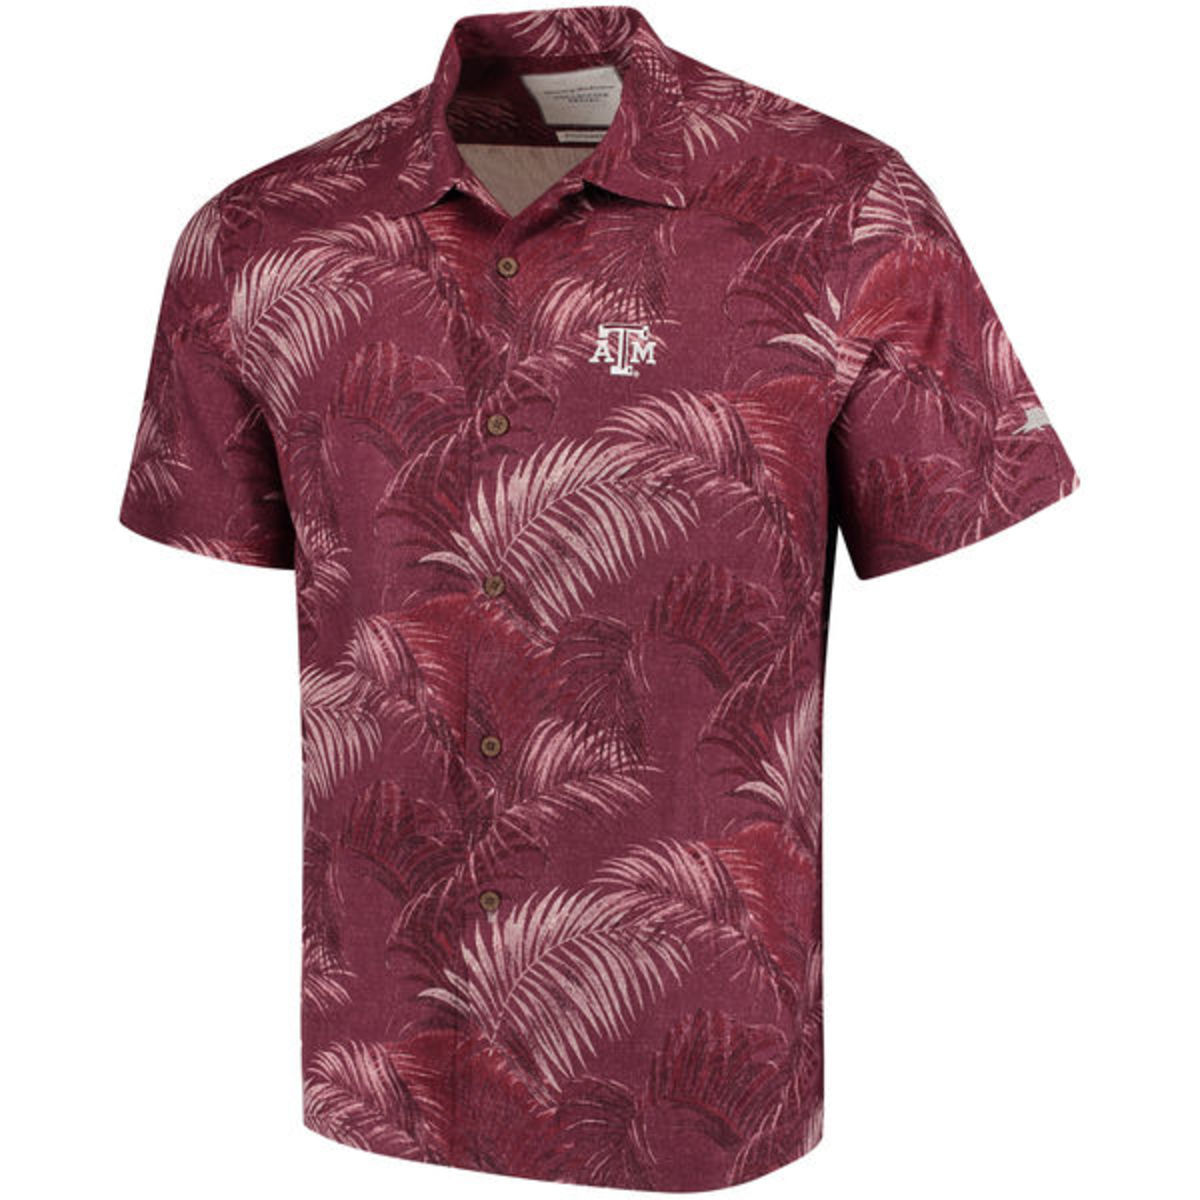 Tommy Bahama Collegiate Series Fez Fronds Camp Shirt Texas A&M